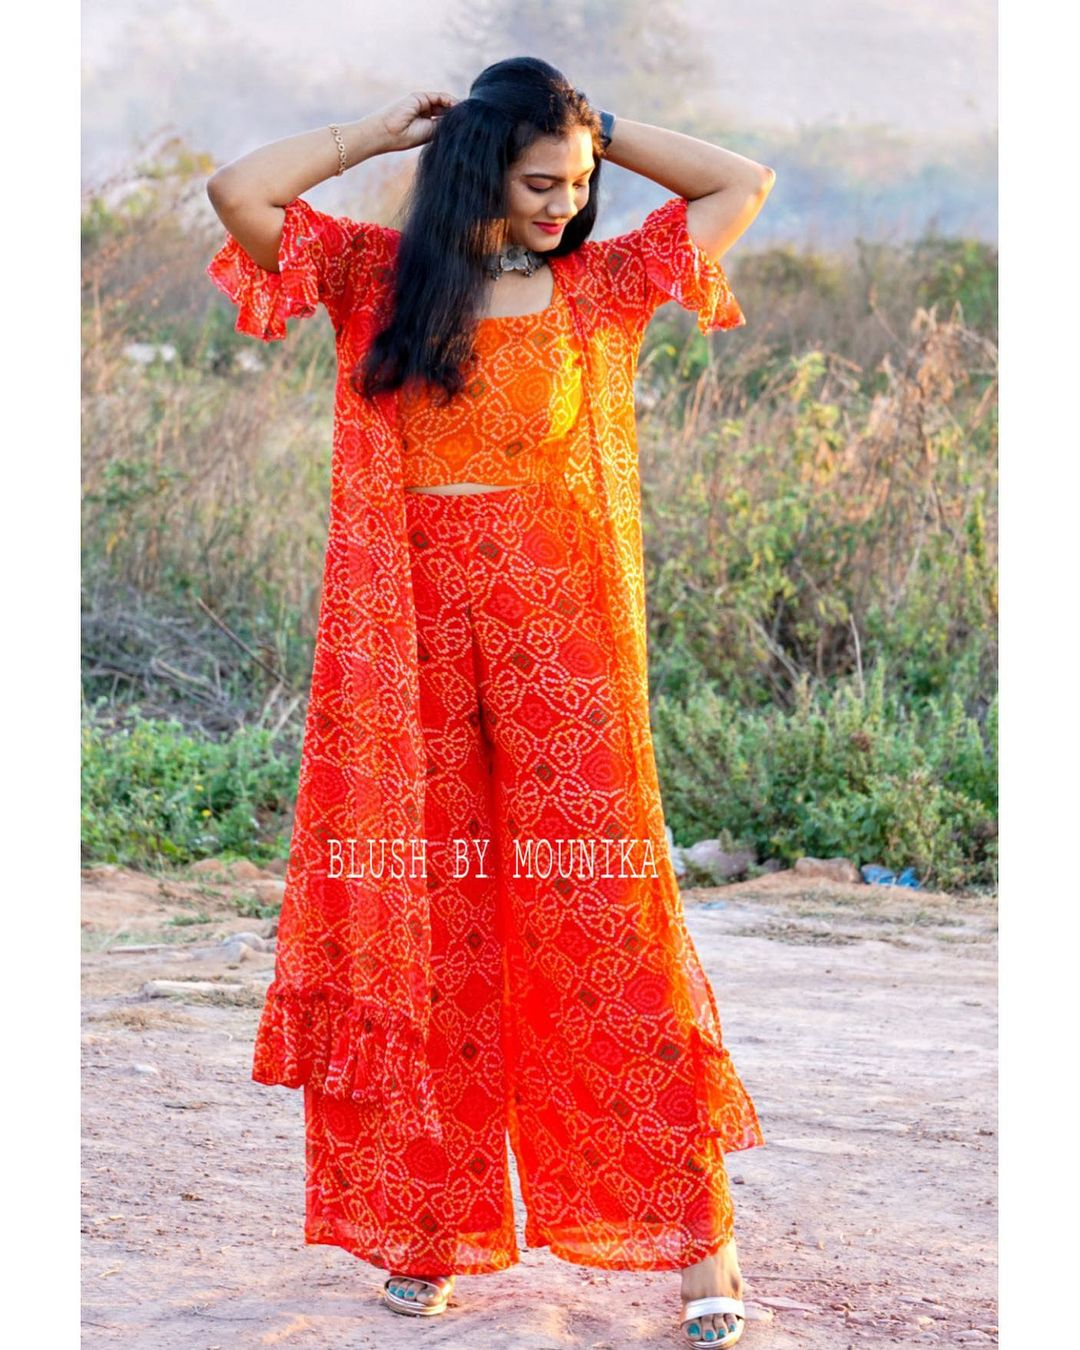 Stunning orange color bandhini palazo pants and crop top with long cape. 2021-02-14